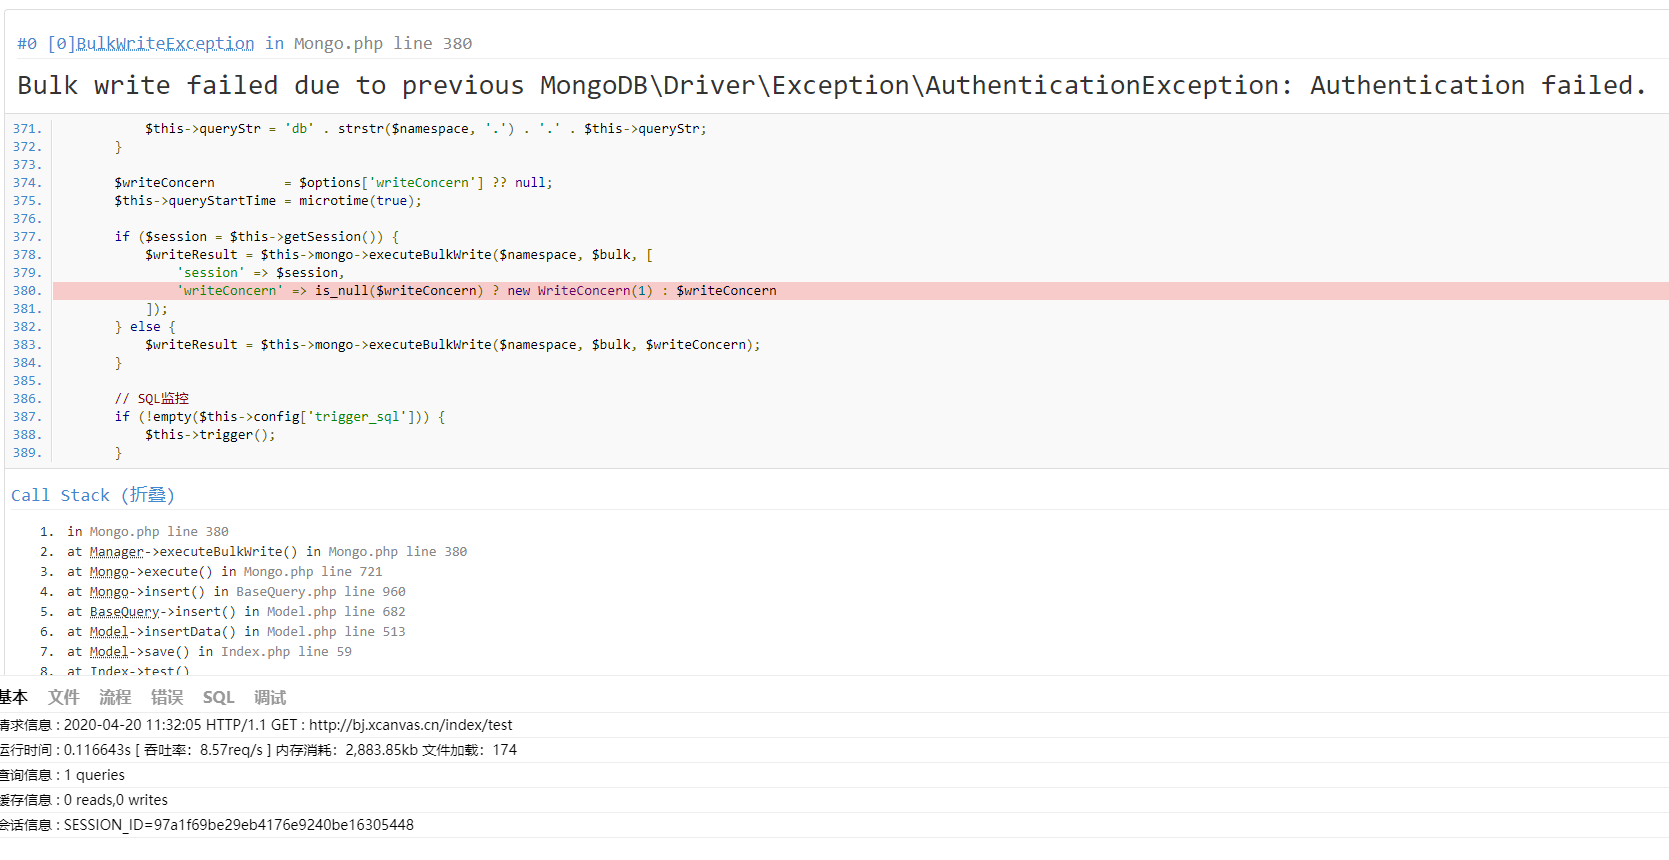 Thinkphp6使用mongo报密码错误 Authentication failed